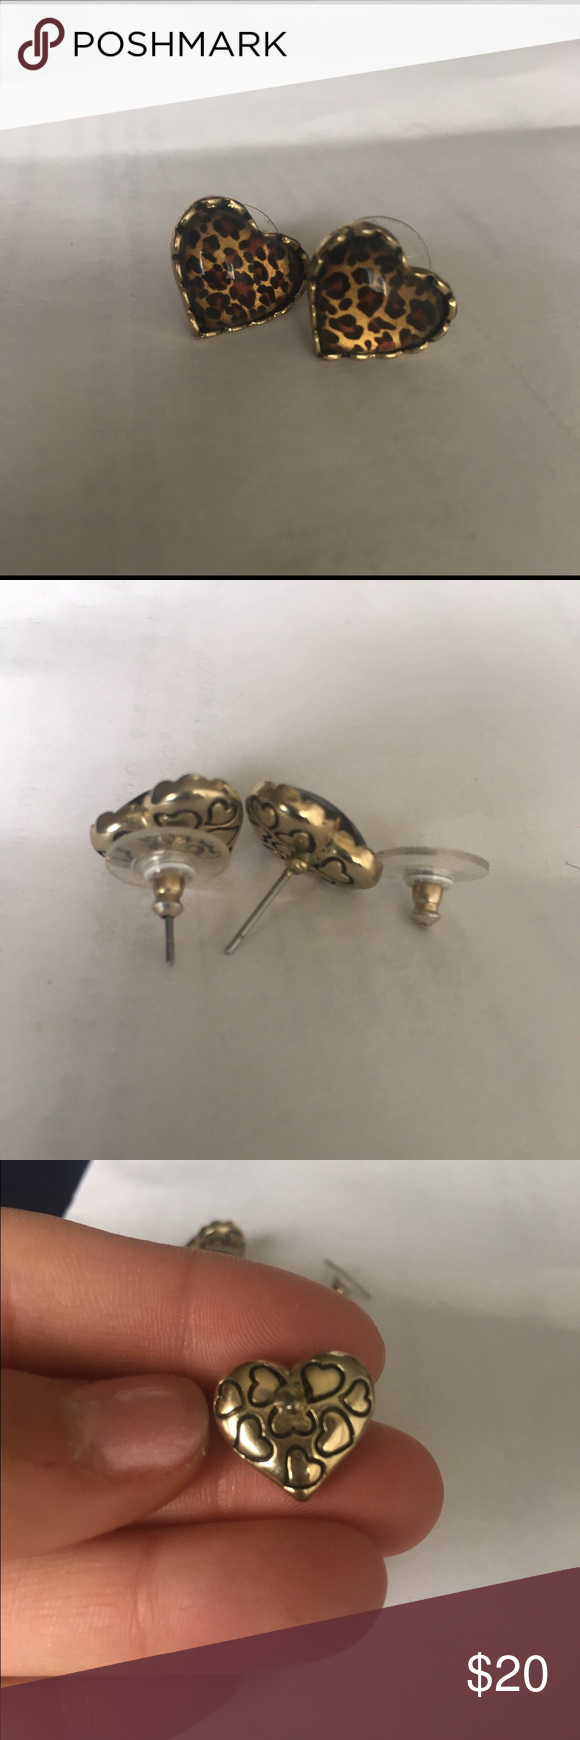 Betsey Johnson Leopard Earrings Betsey Johnson leopard stud earrings. Very lightly worn and in excellent condition. Betsey Johnson Jewelry Earrings